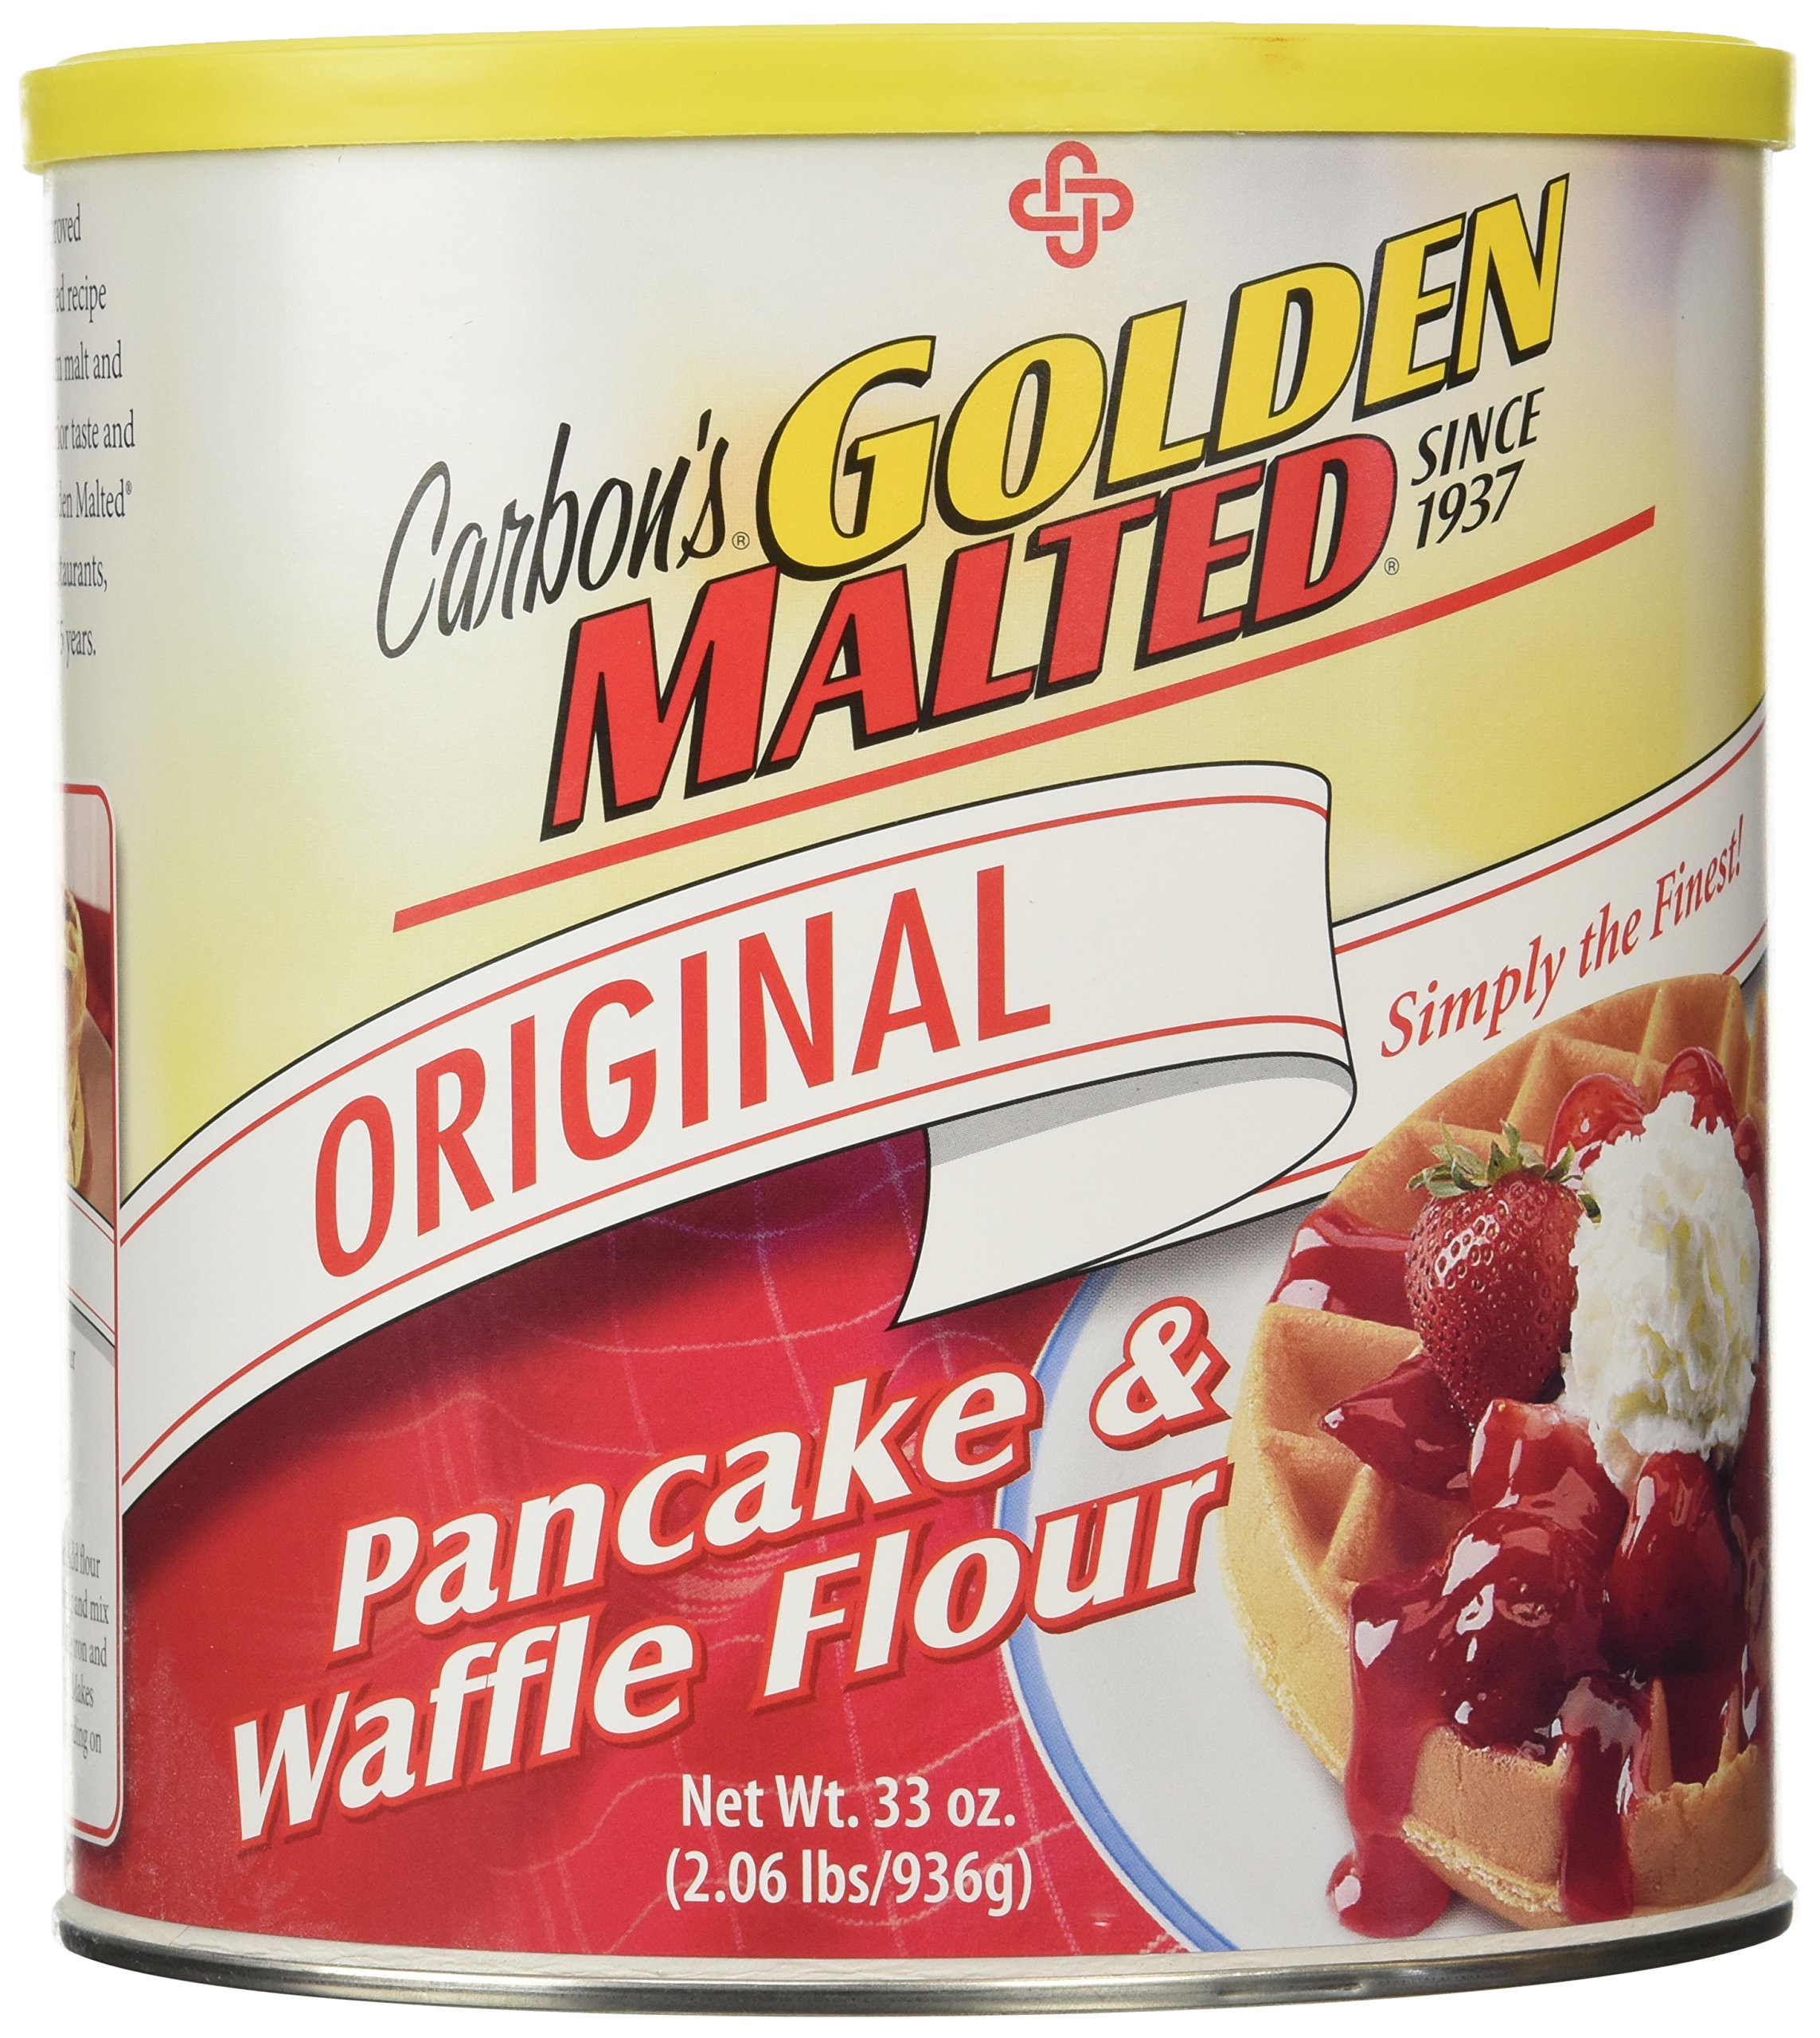 Golden Malted Waffle and Pancake Flour, Original, 33-Ounce Can by Golden Malted (Image #1)